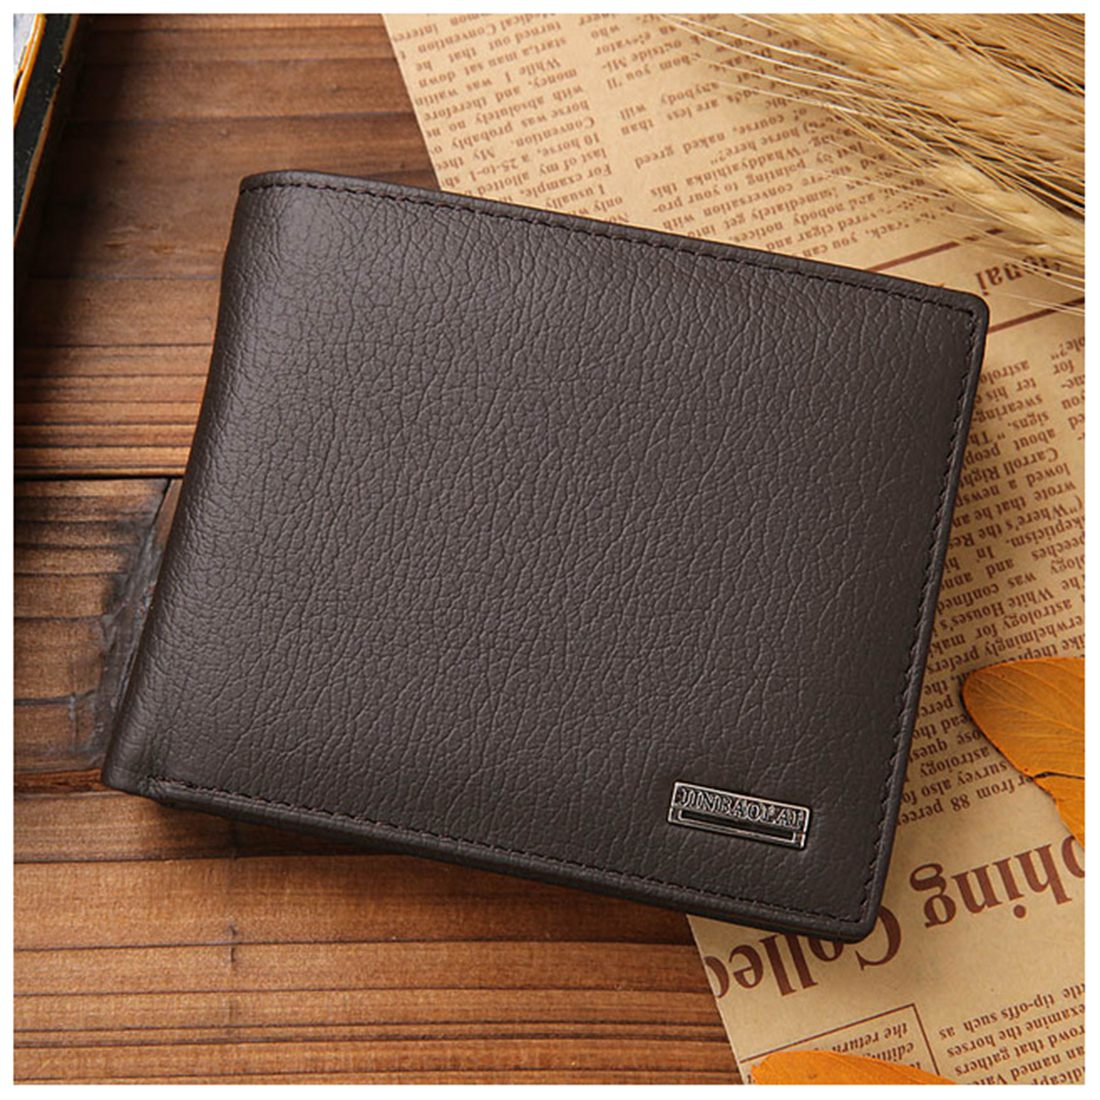 JINBAOLAI Small Short Leather Mens Wallet Male Wallet Bag Wallet Vallet Card Money Persian world Wallet ...